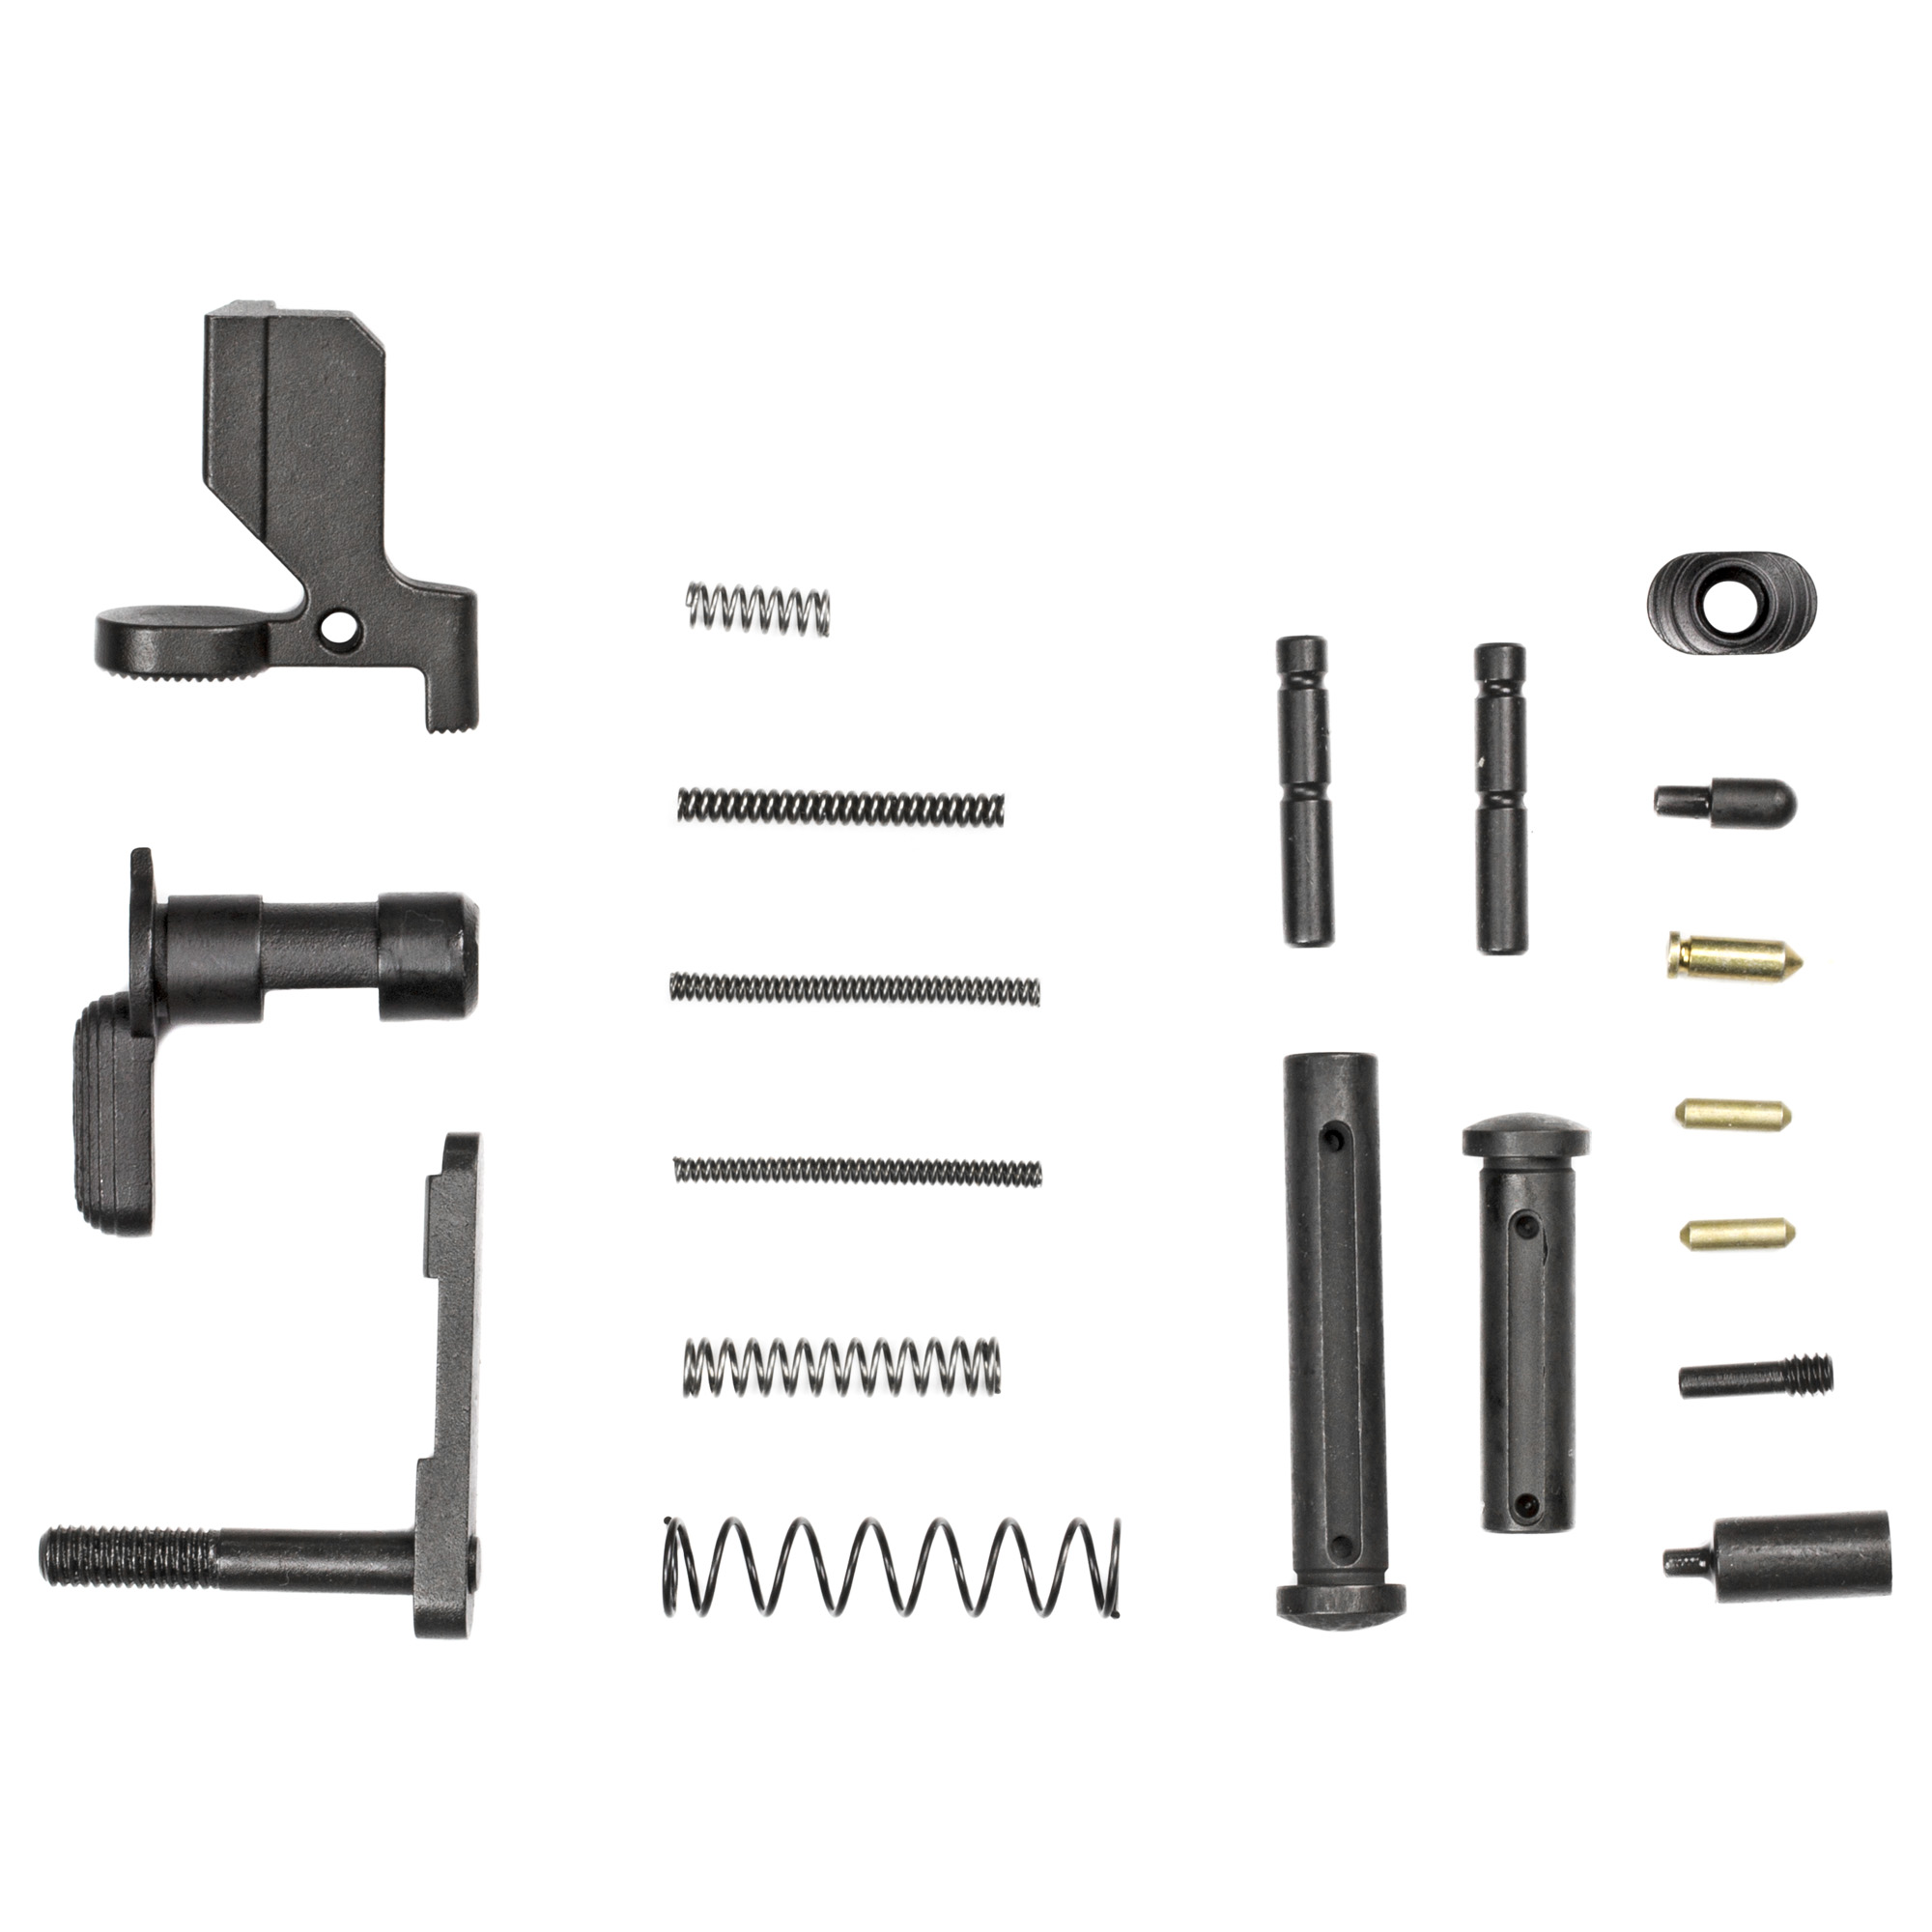 LUTH-AR builder parts kit for 308 lower.